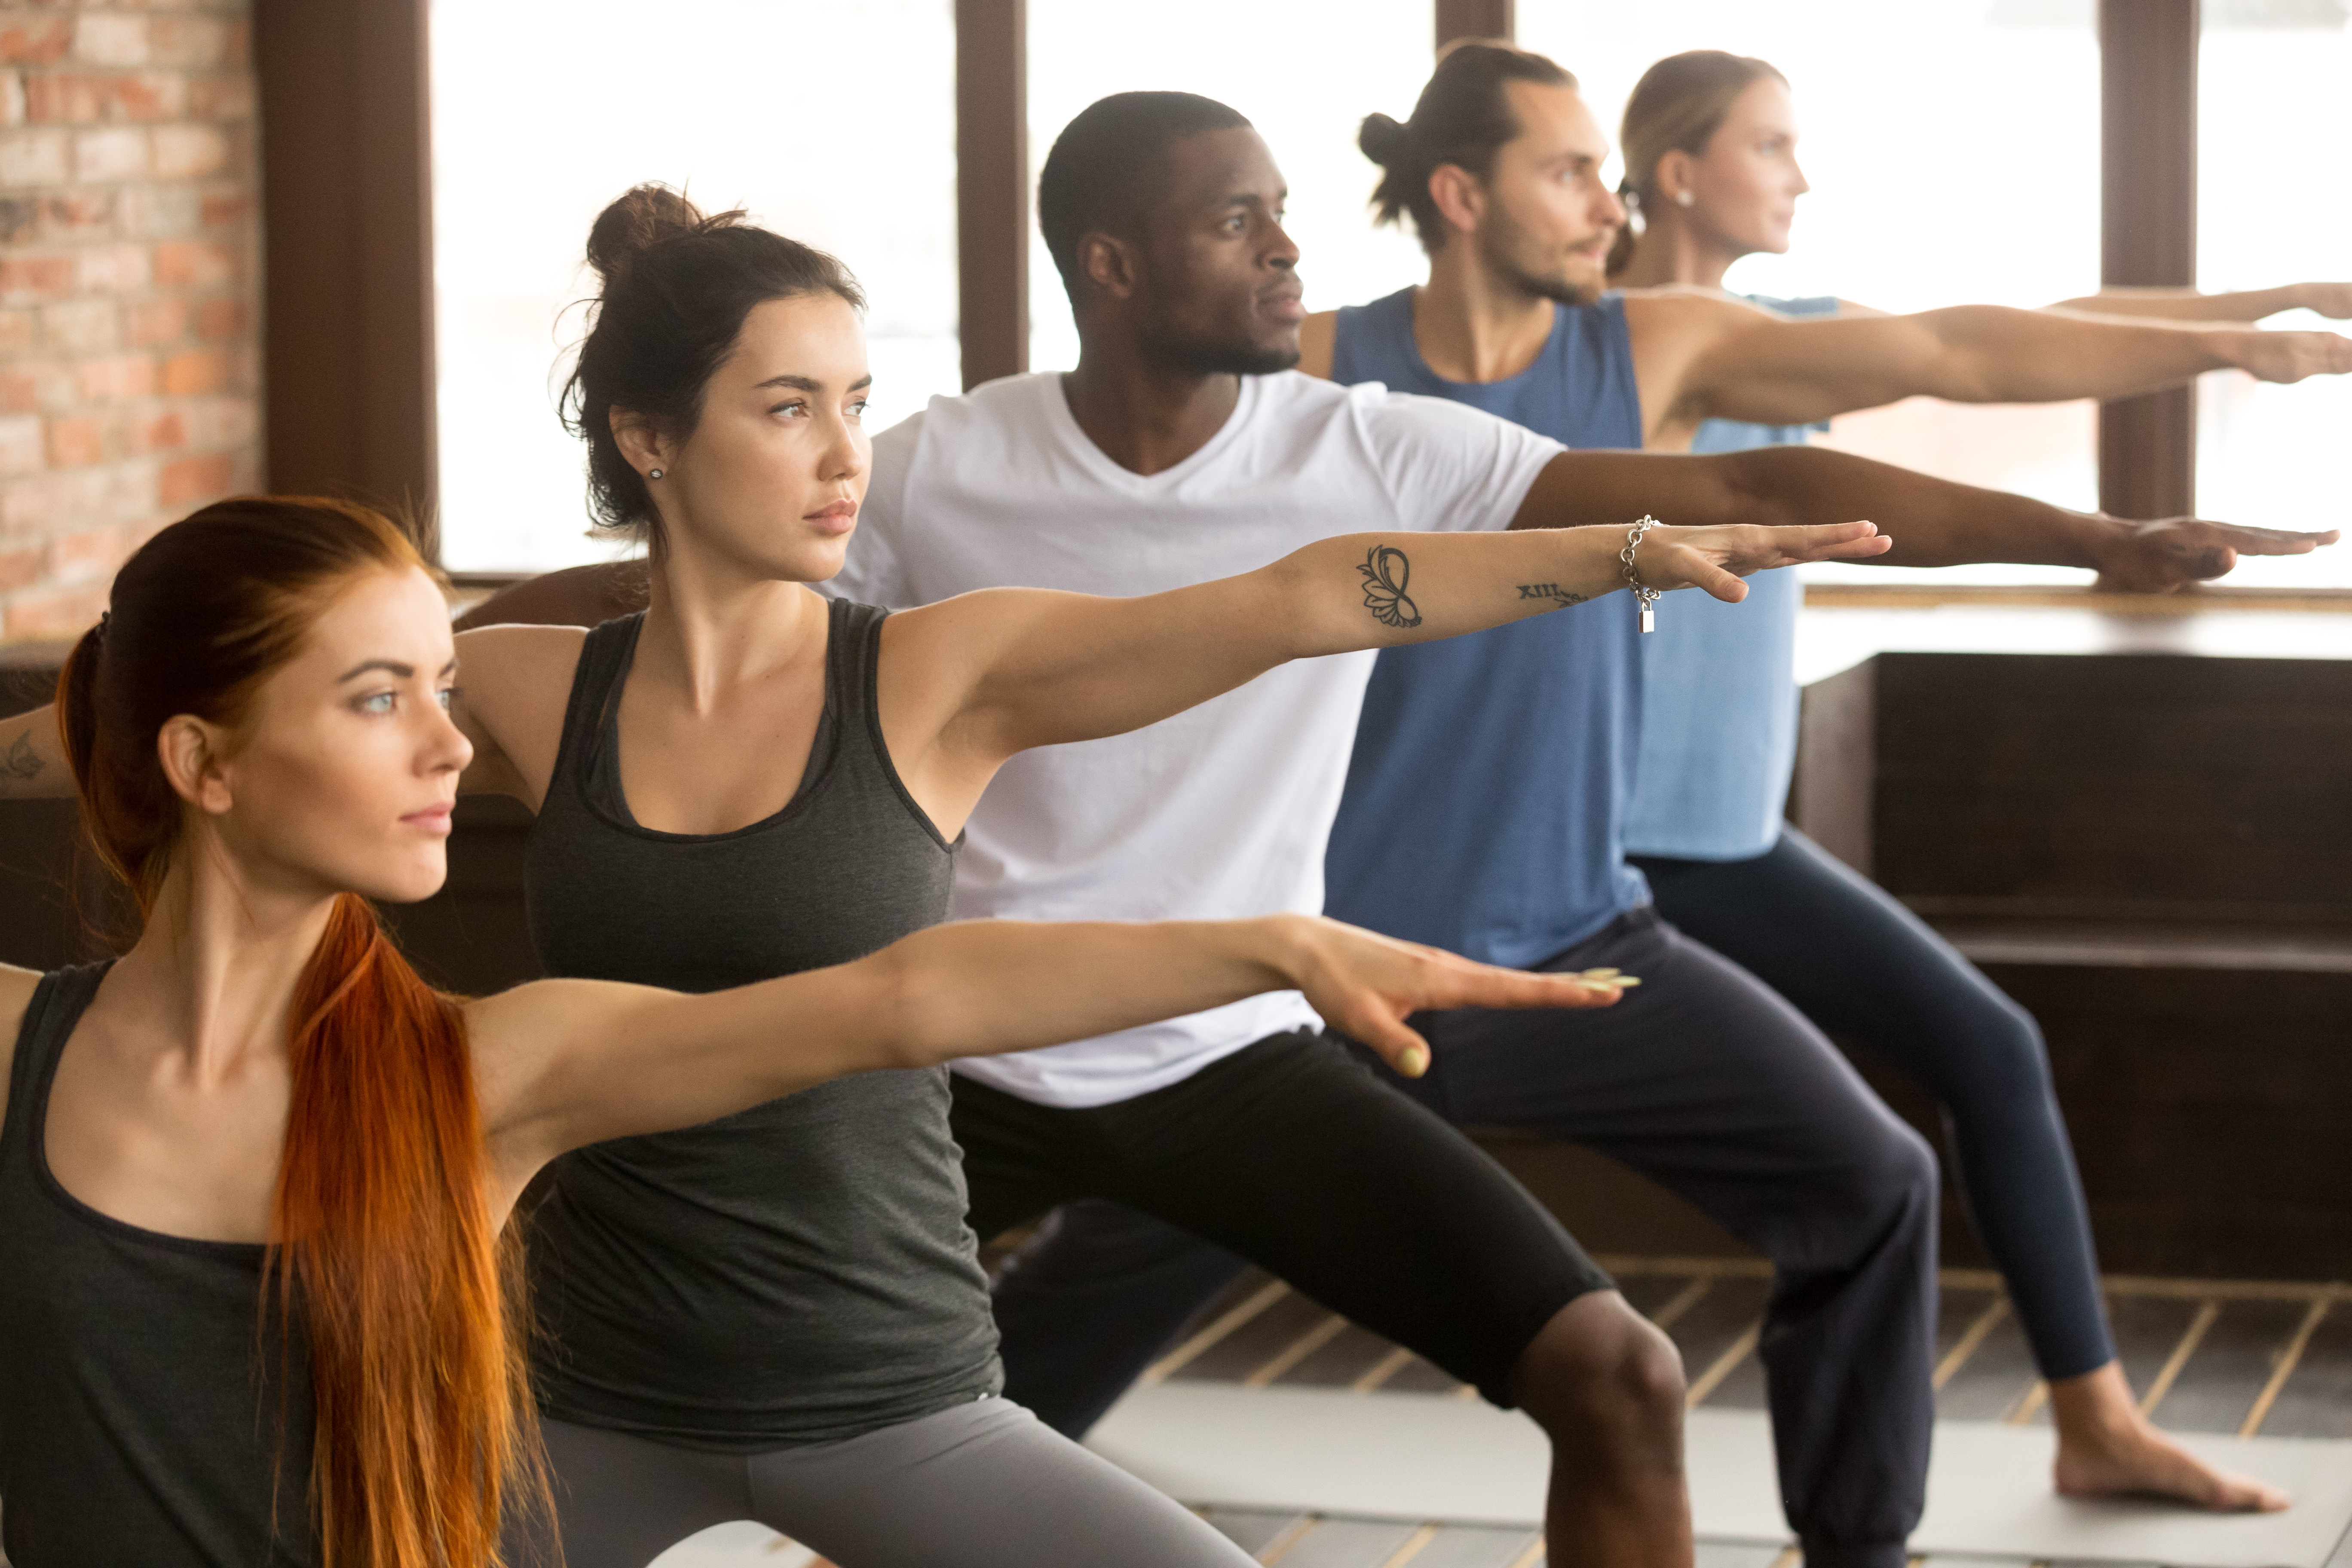 Diverse yoga class, yoga for everybody, community, start where you are